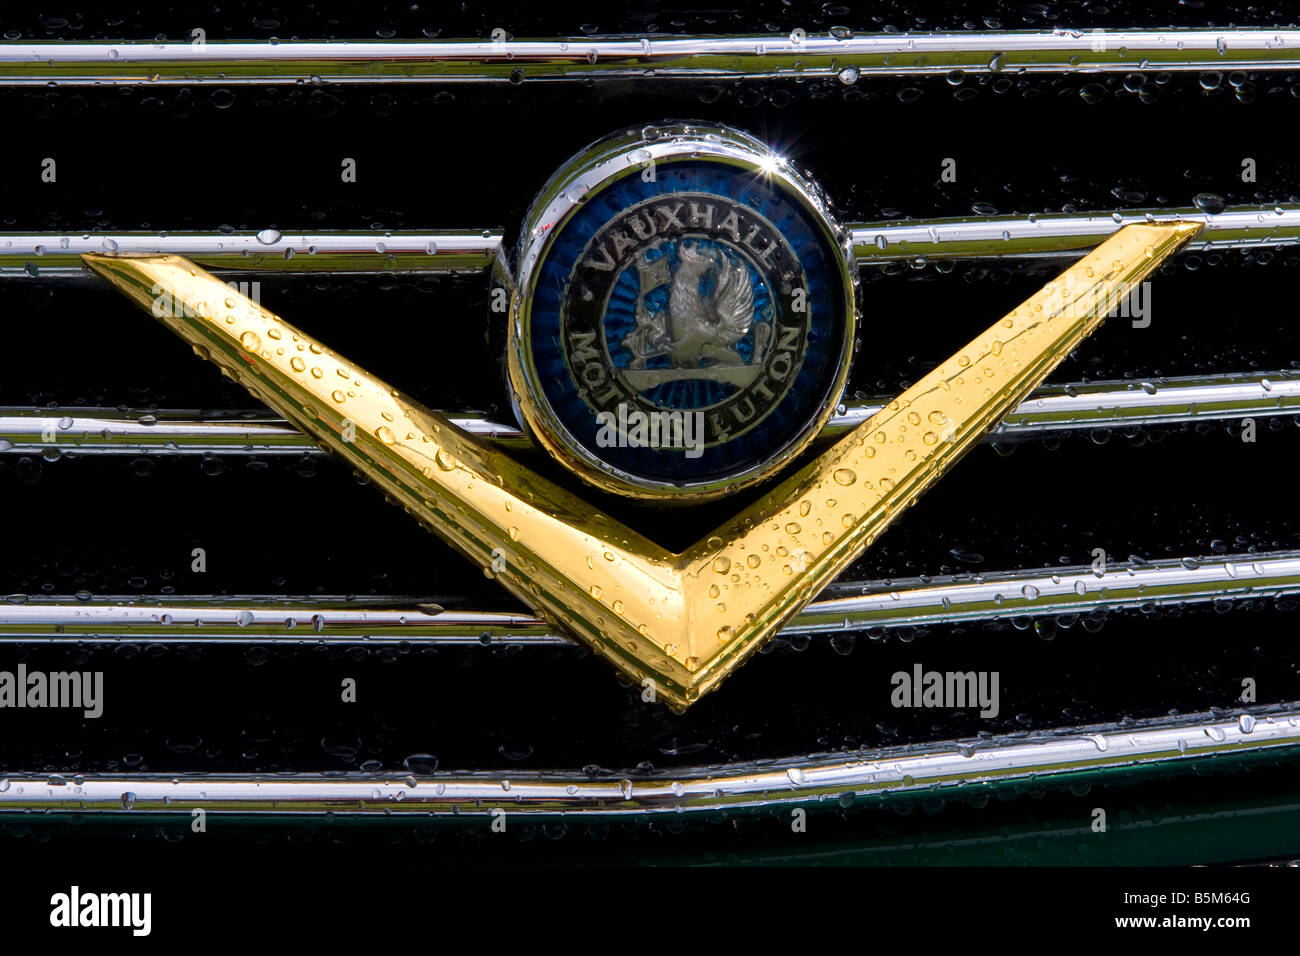 vauxhall motors luton car badge and grille with rain drops and chrome - Stock Image